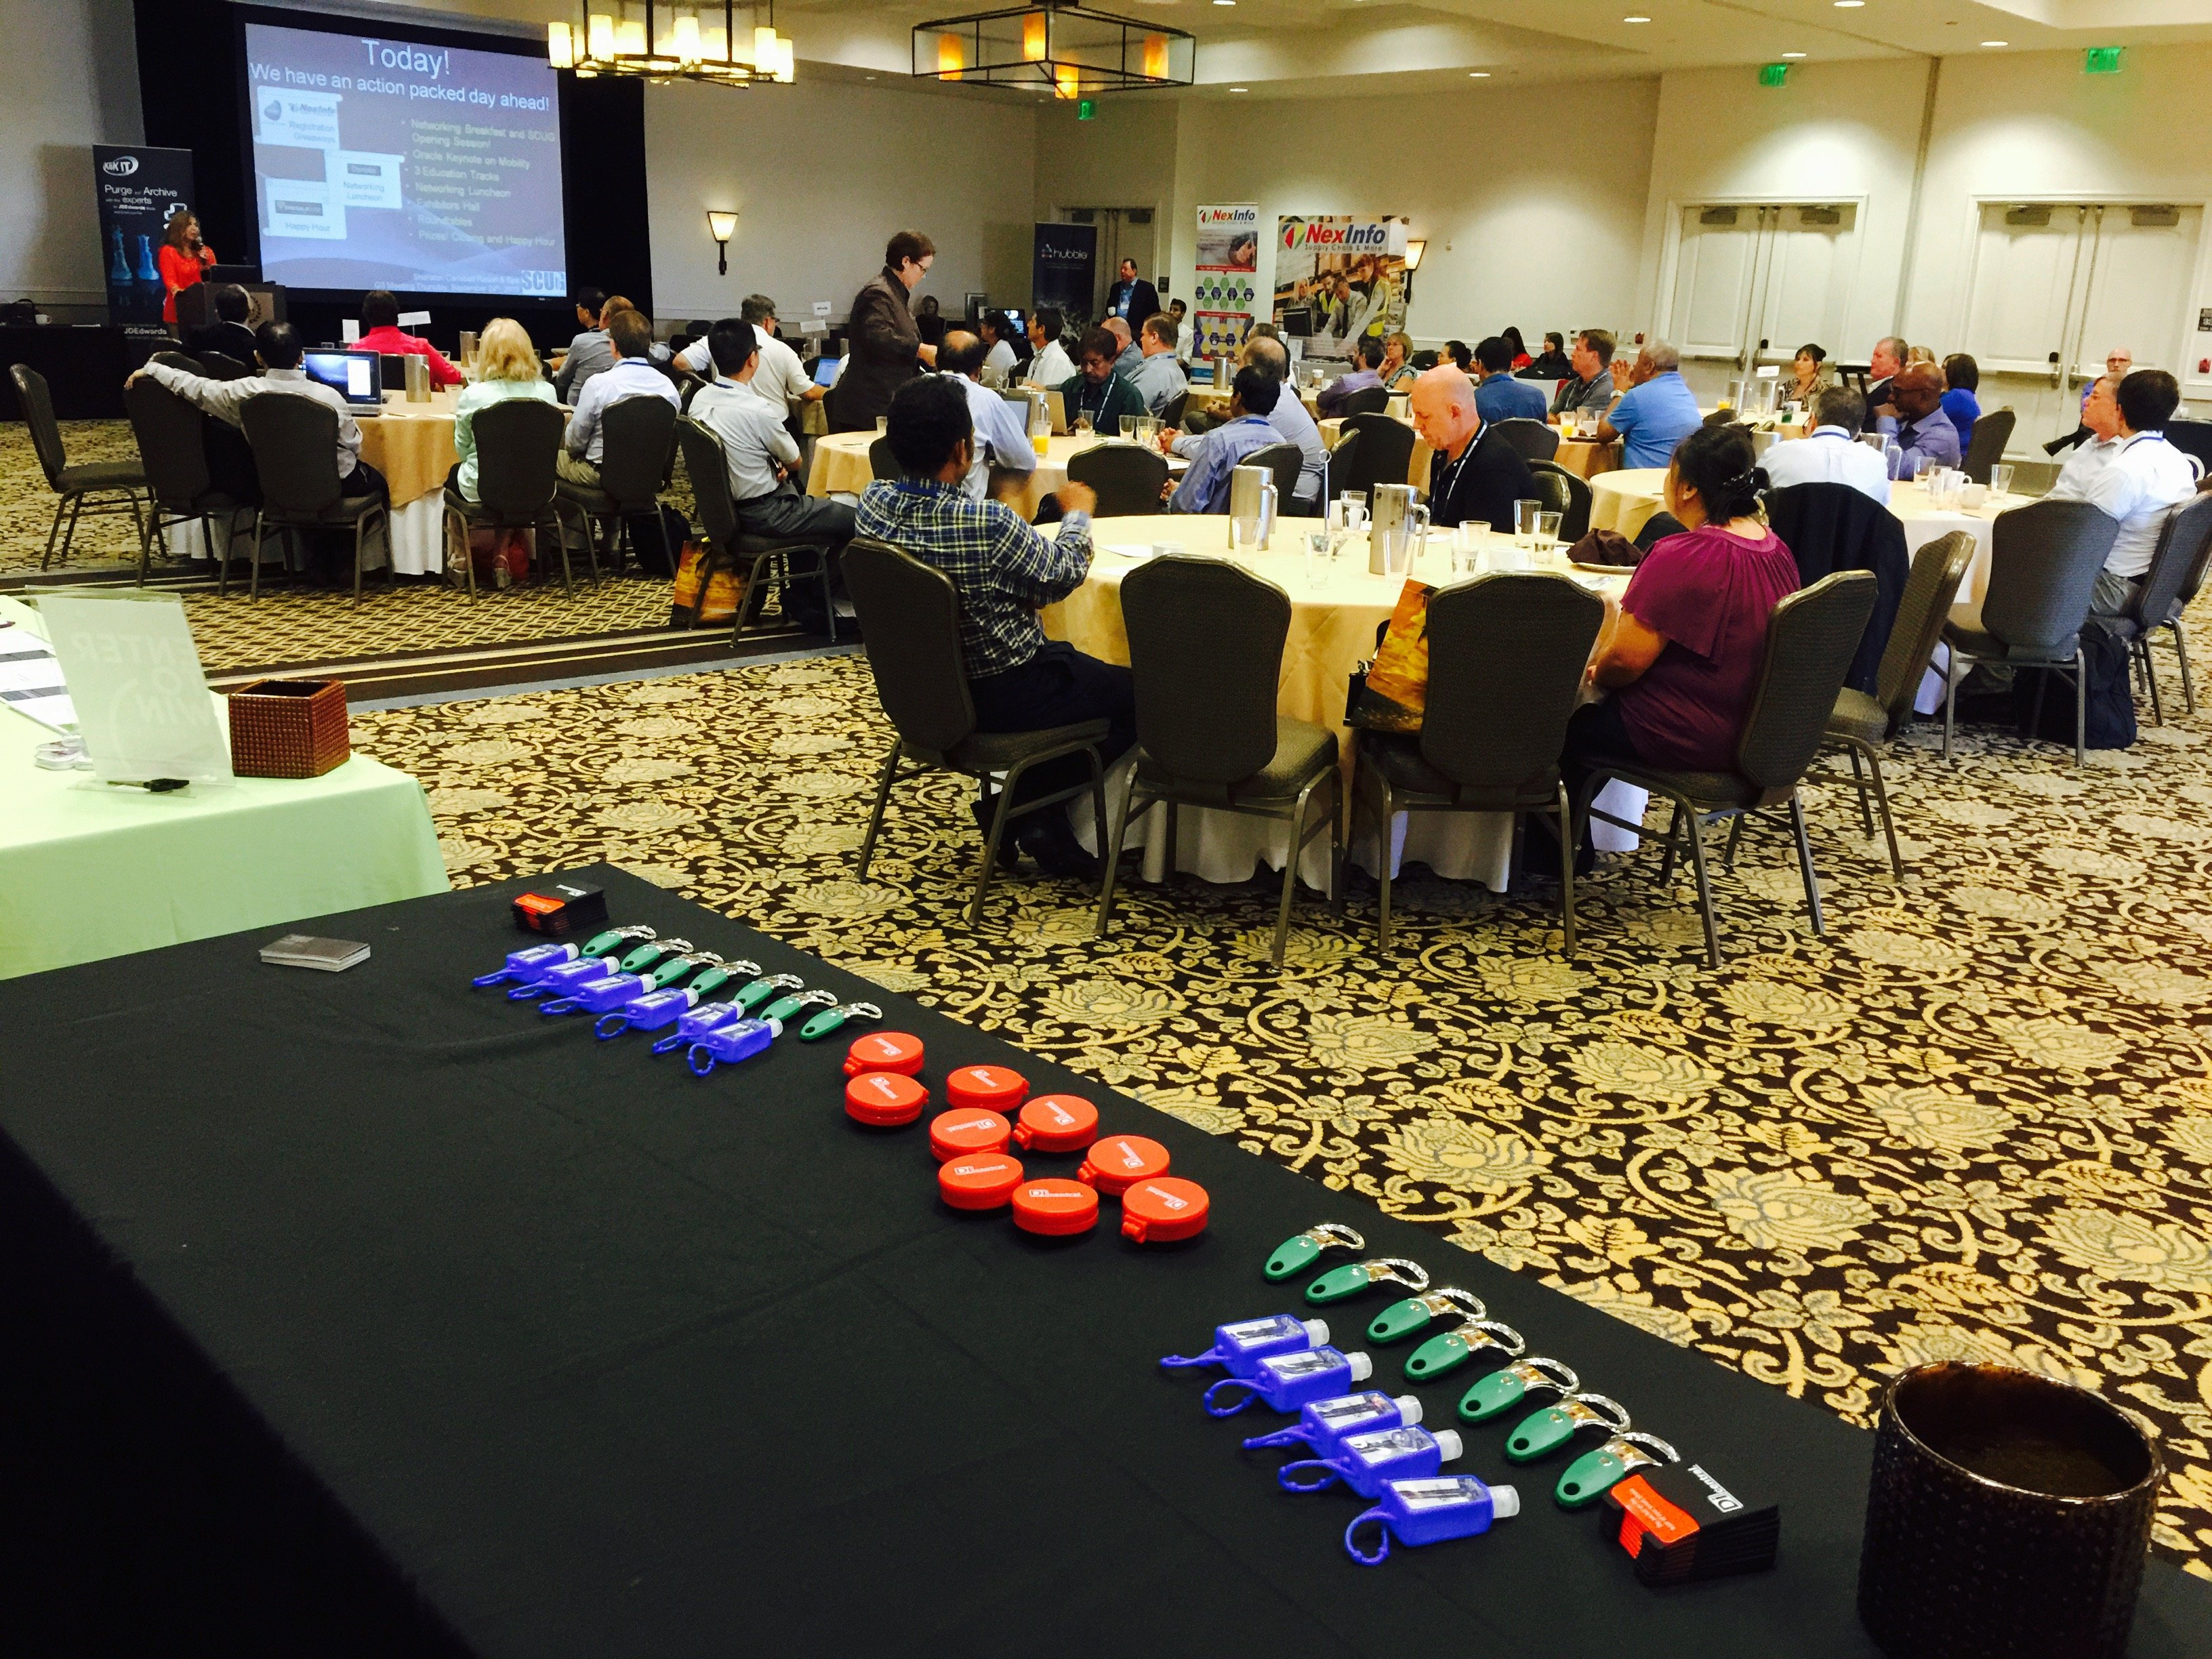 The Southern California User Group Q3 Meeting is Happening Today!